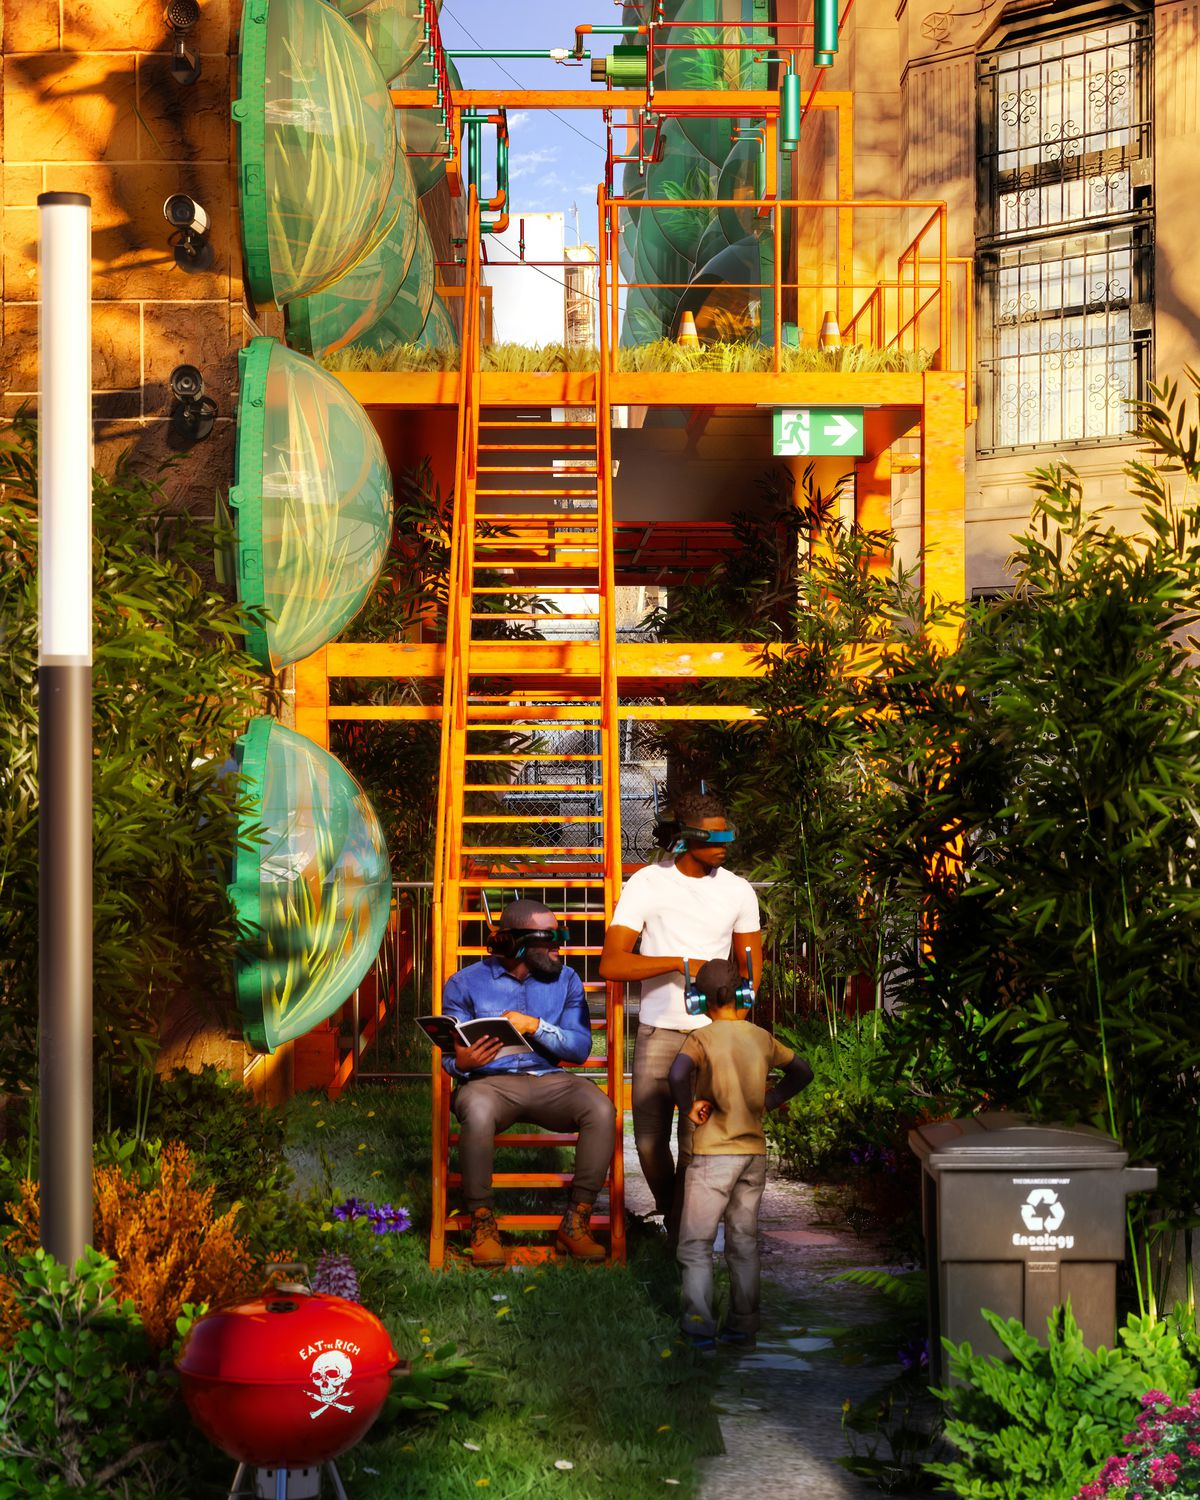 A rendering showing two men sitting on stairs with VR visors on. A vertical garden grows in an alleyway with transparent pods on the walls